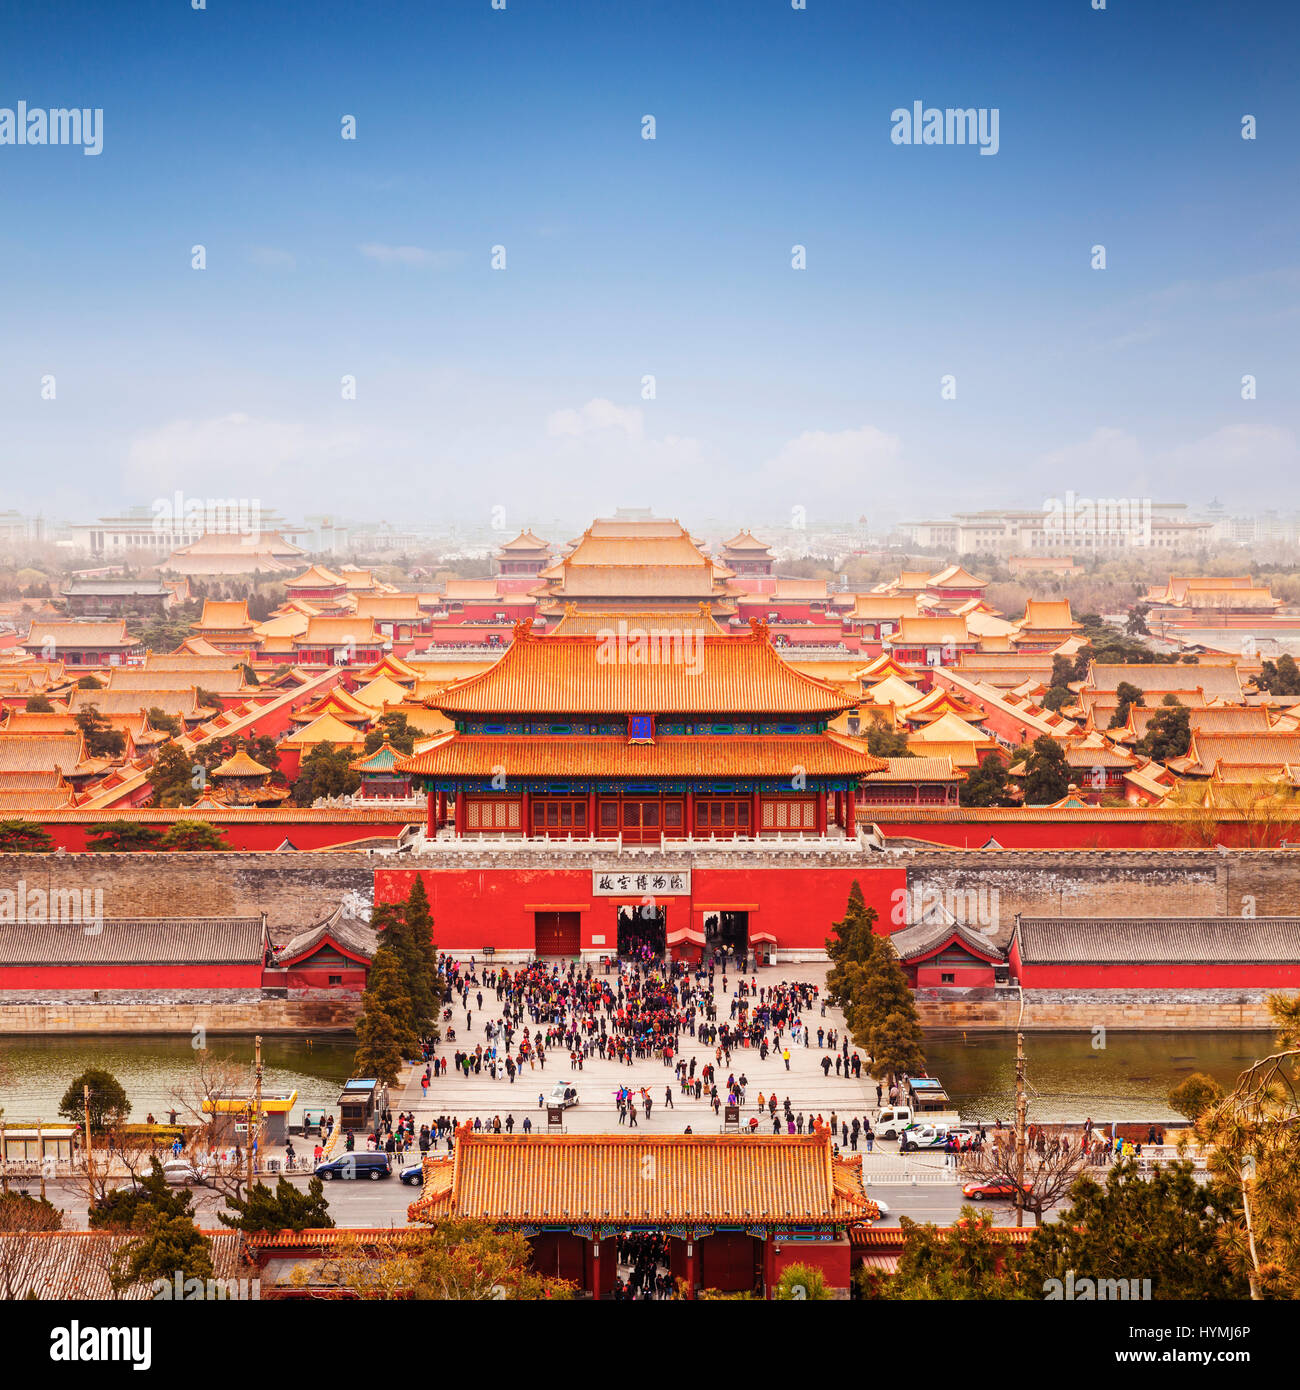 Aerial view of the Forbidden City, Beijing, China, square format. - Stock Image